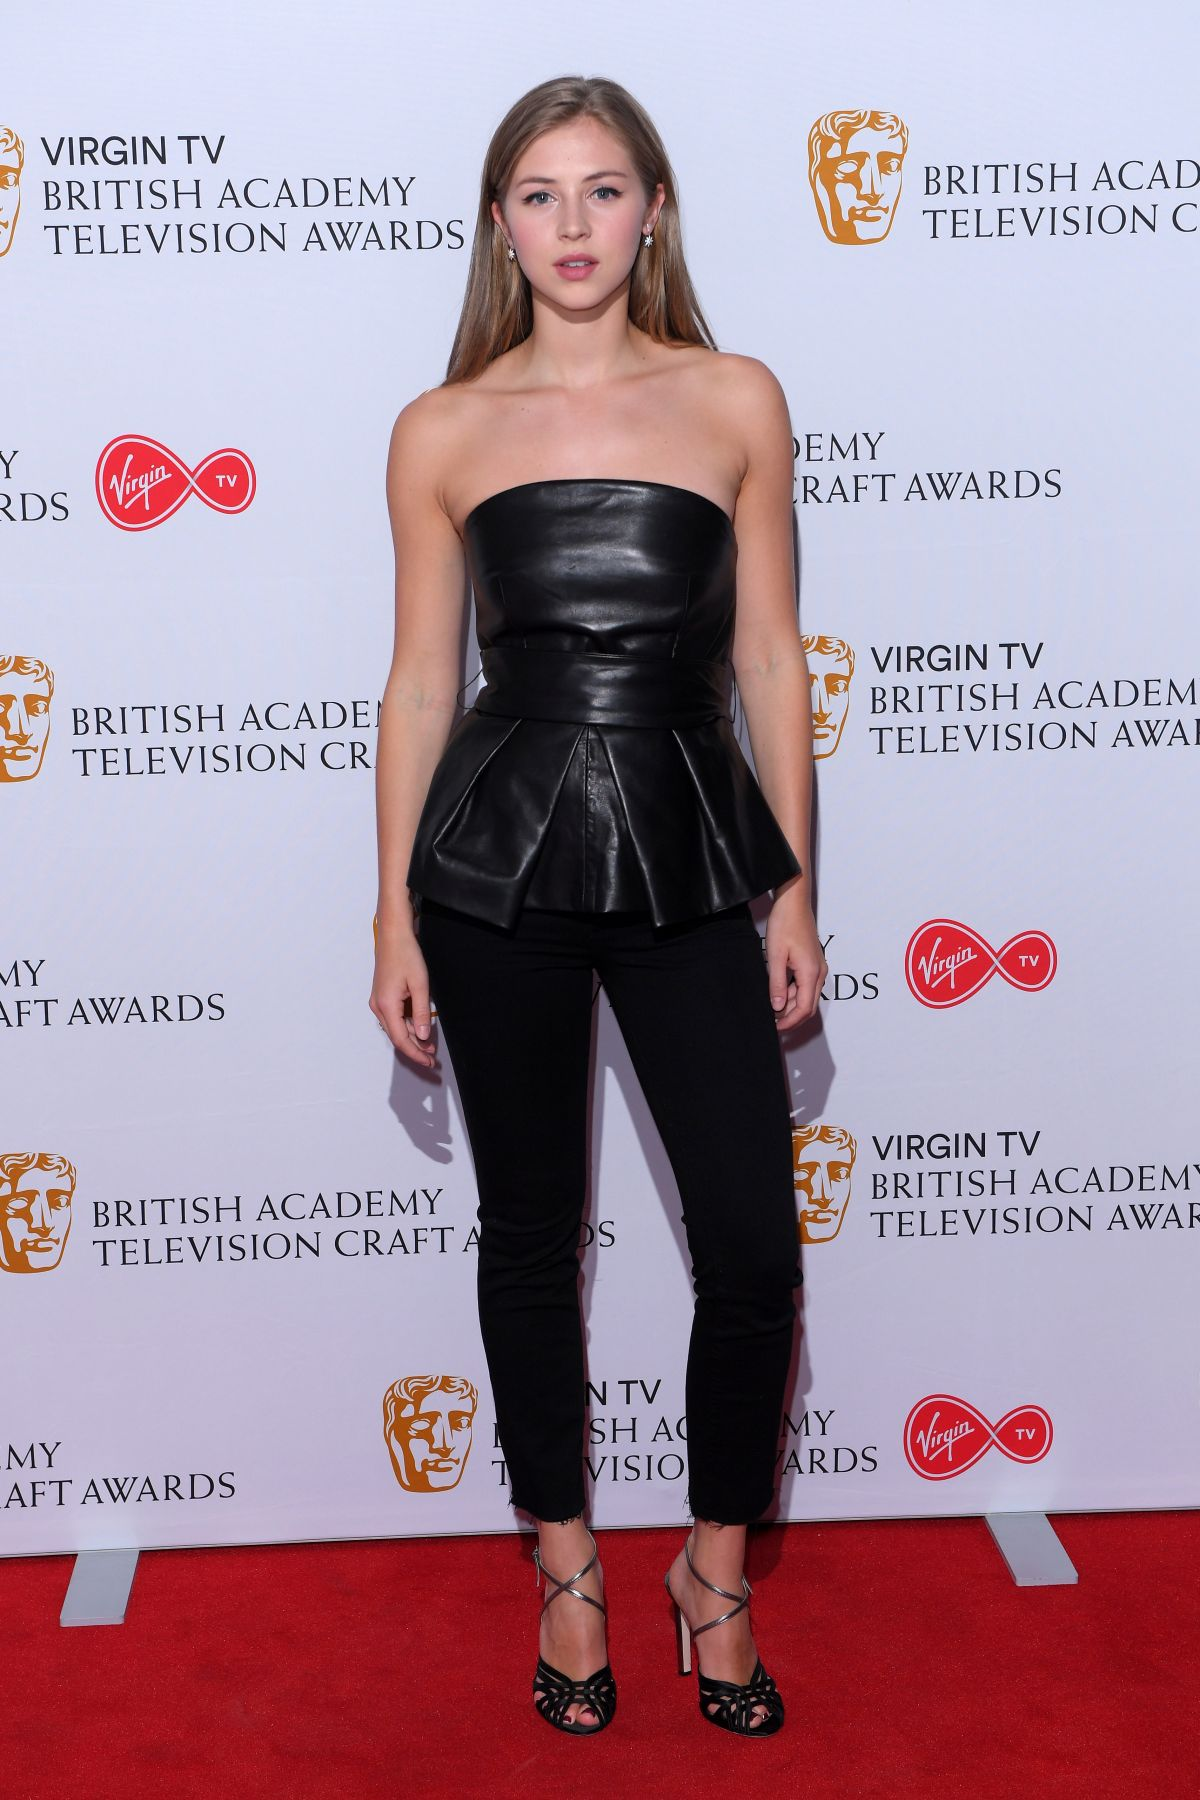 HERMIONE CORFIELD at British Academy Television and Craft Awards Nominees Party in London 04/20/2017   hermione-corfield-at-british-academy-television-and-craft-awards-nominees-party-in-london-04-20-2017_7